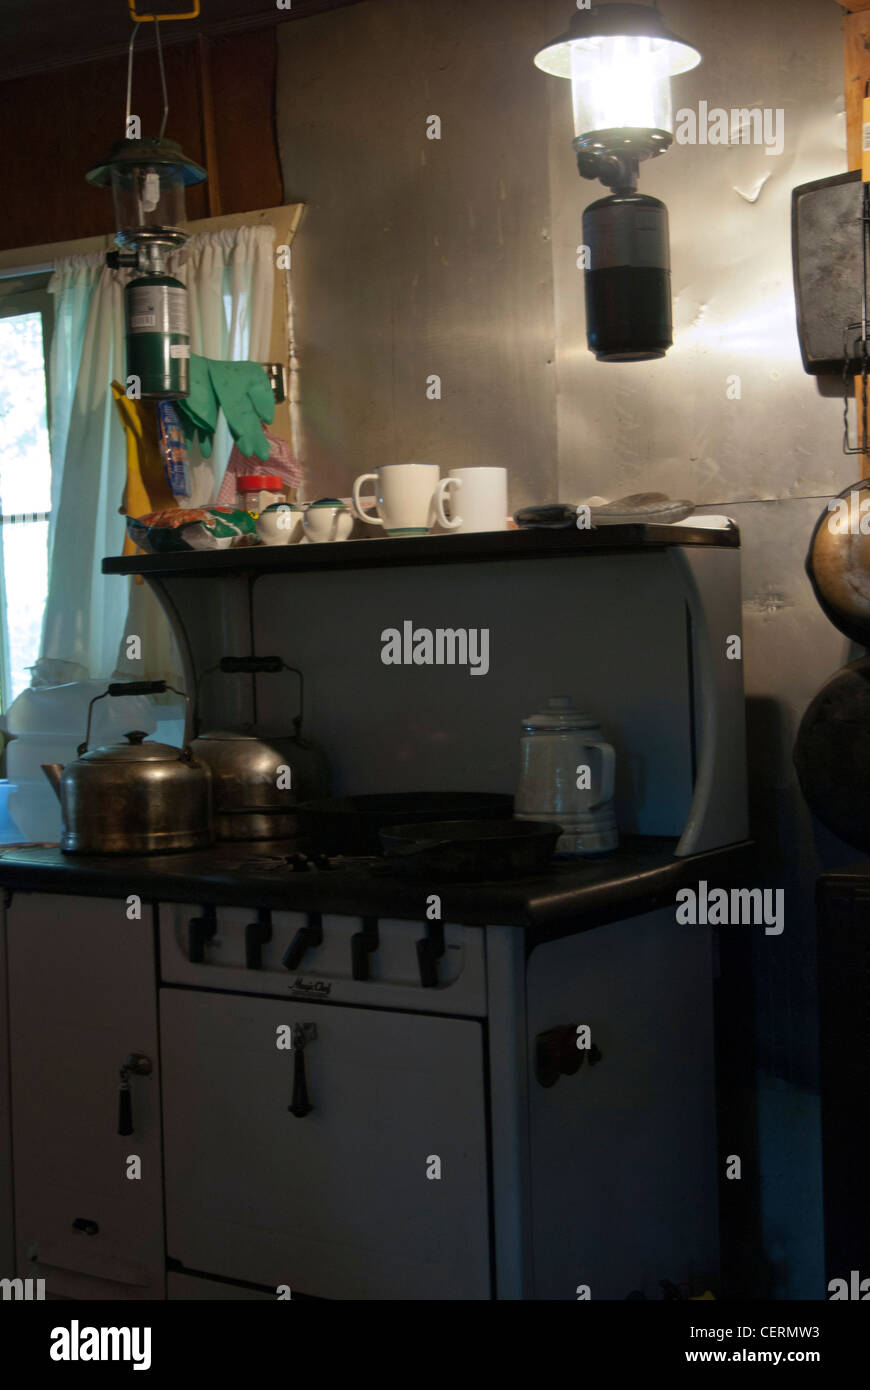 Old cabin stove with hanging lantern and vintage kettles. - Stock Image